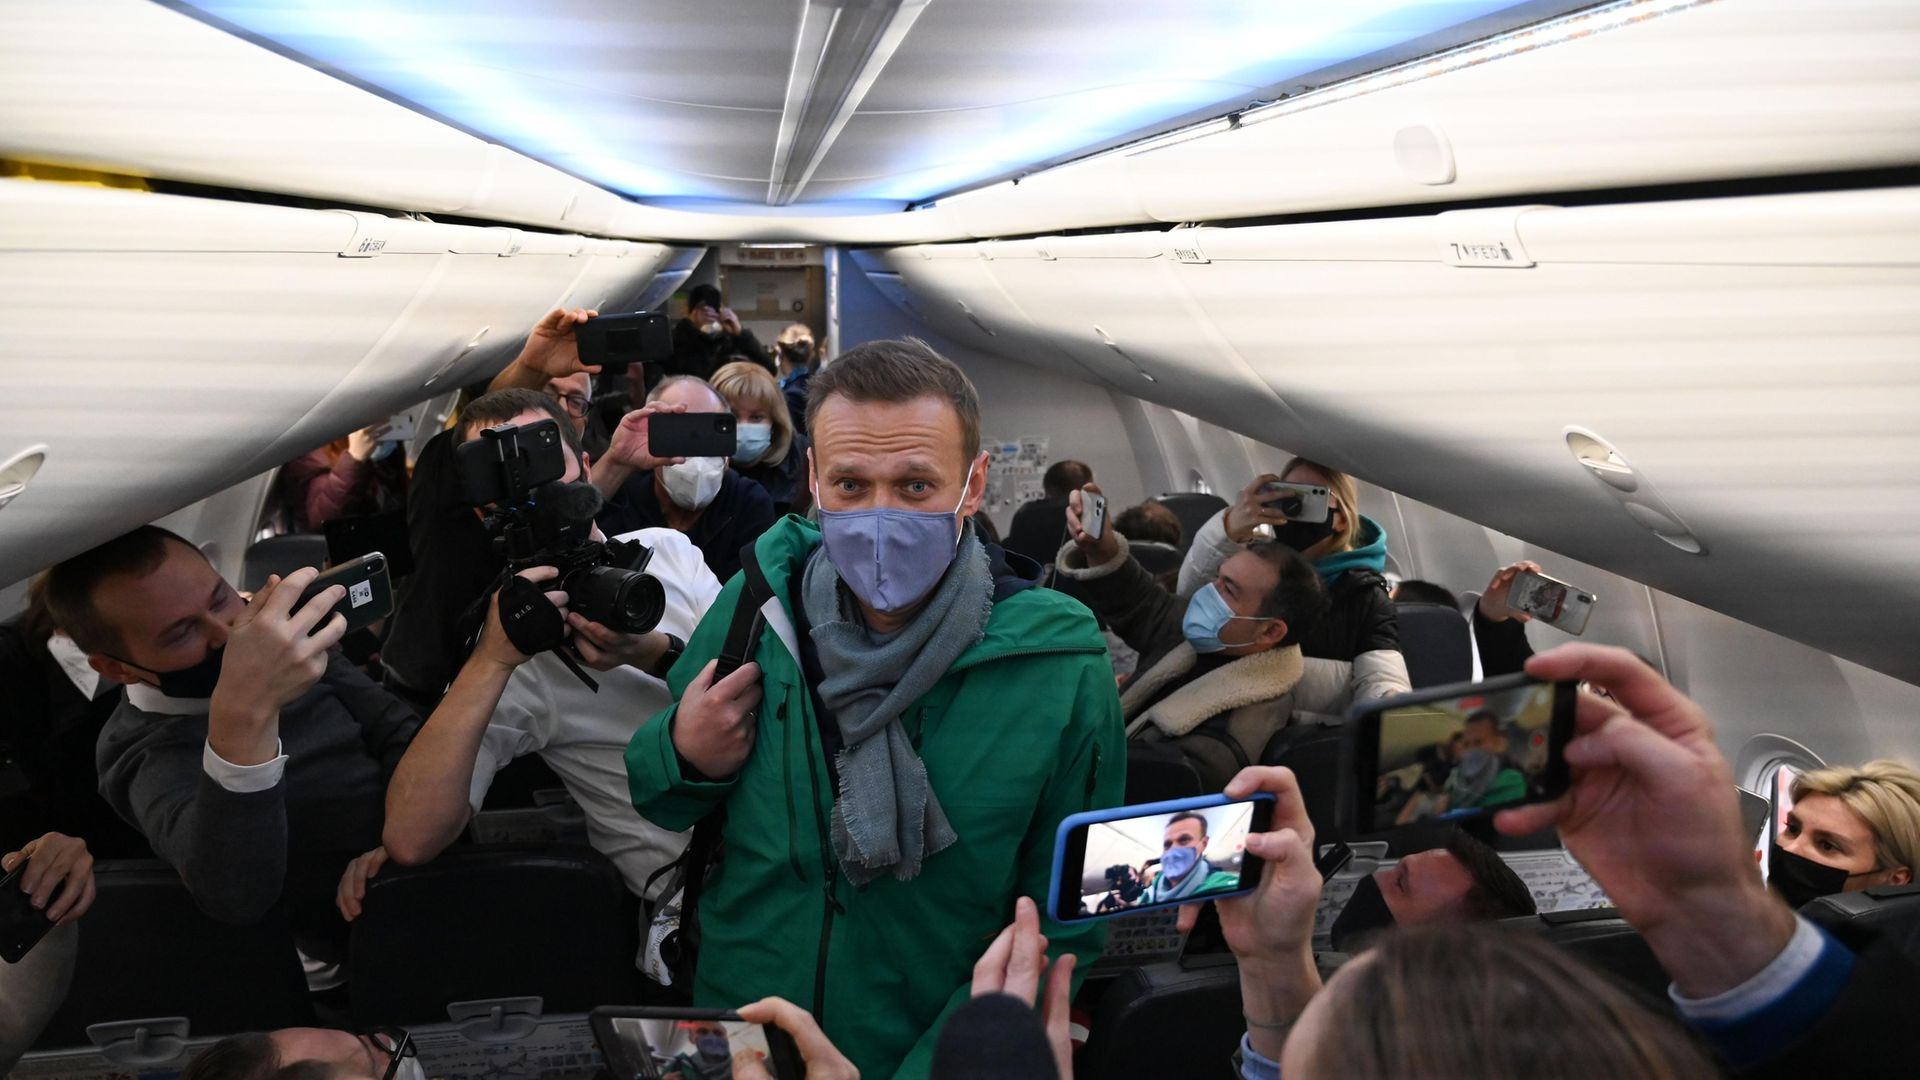 Russian opposition leader Alexei Navalny walks to take his seat on the aircraft taking him from Berlin to Moscow - Credit: AFP via Getty Images